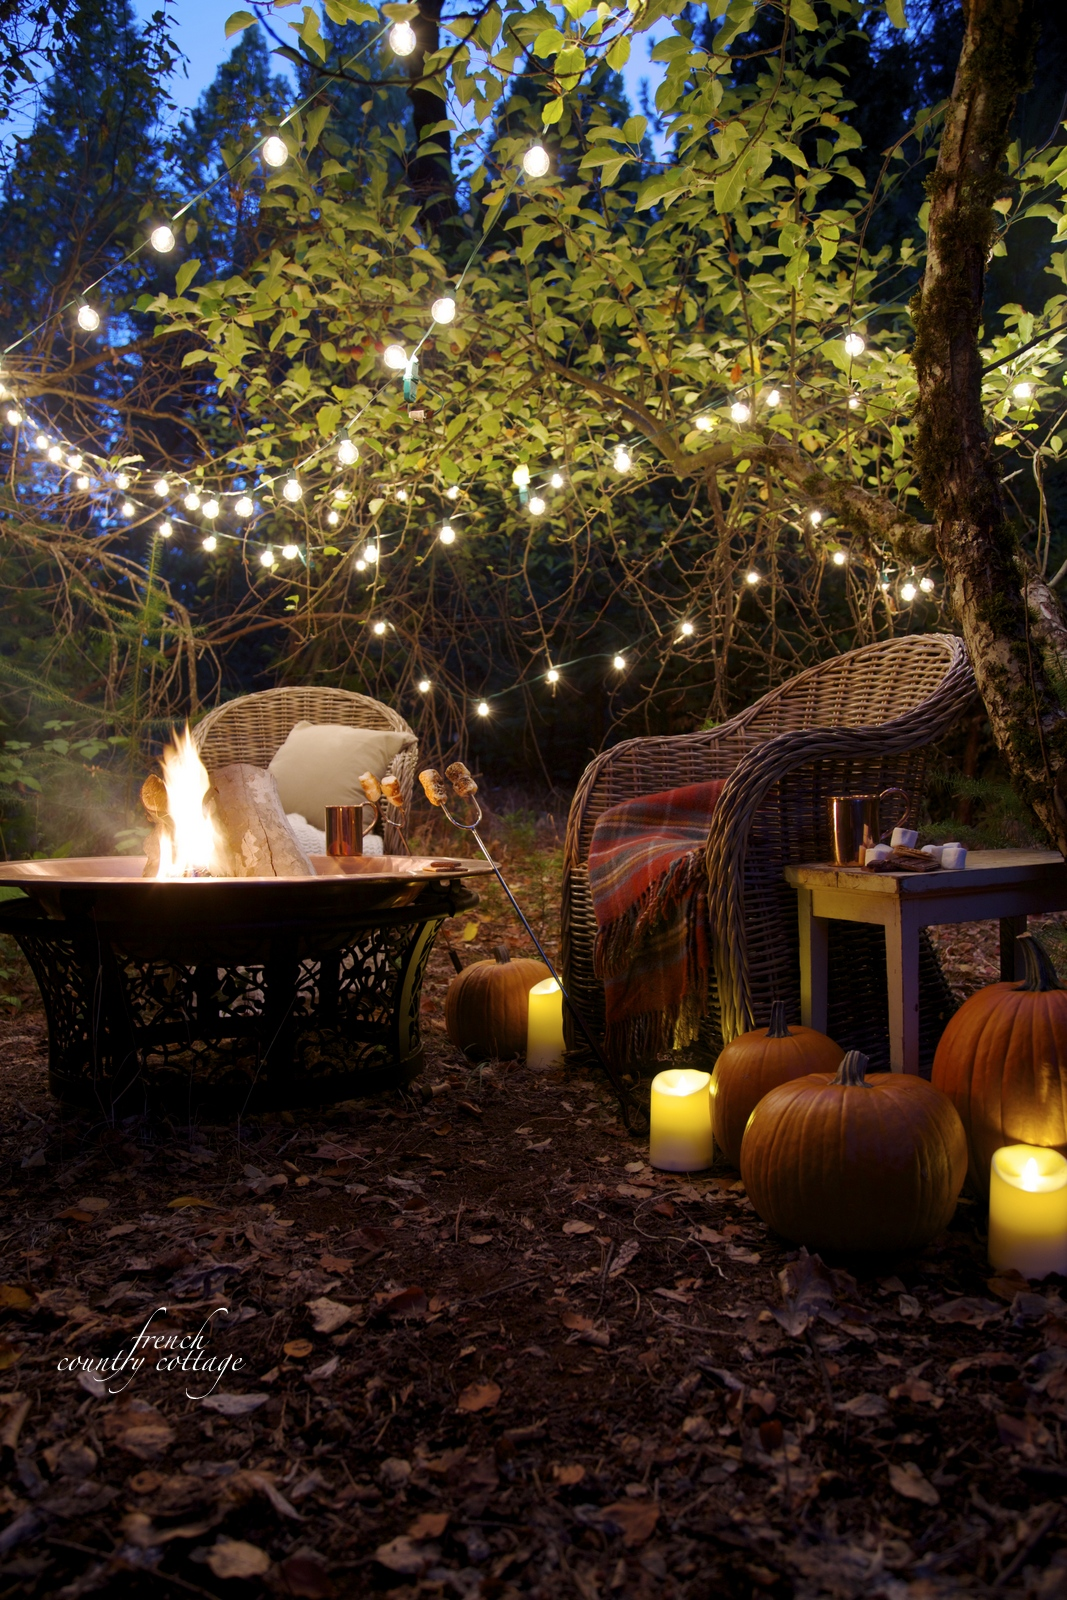 Autumn Night Fire Pit : An autumn evening in the orchard french country cottage